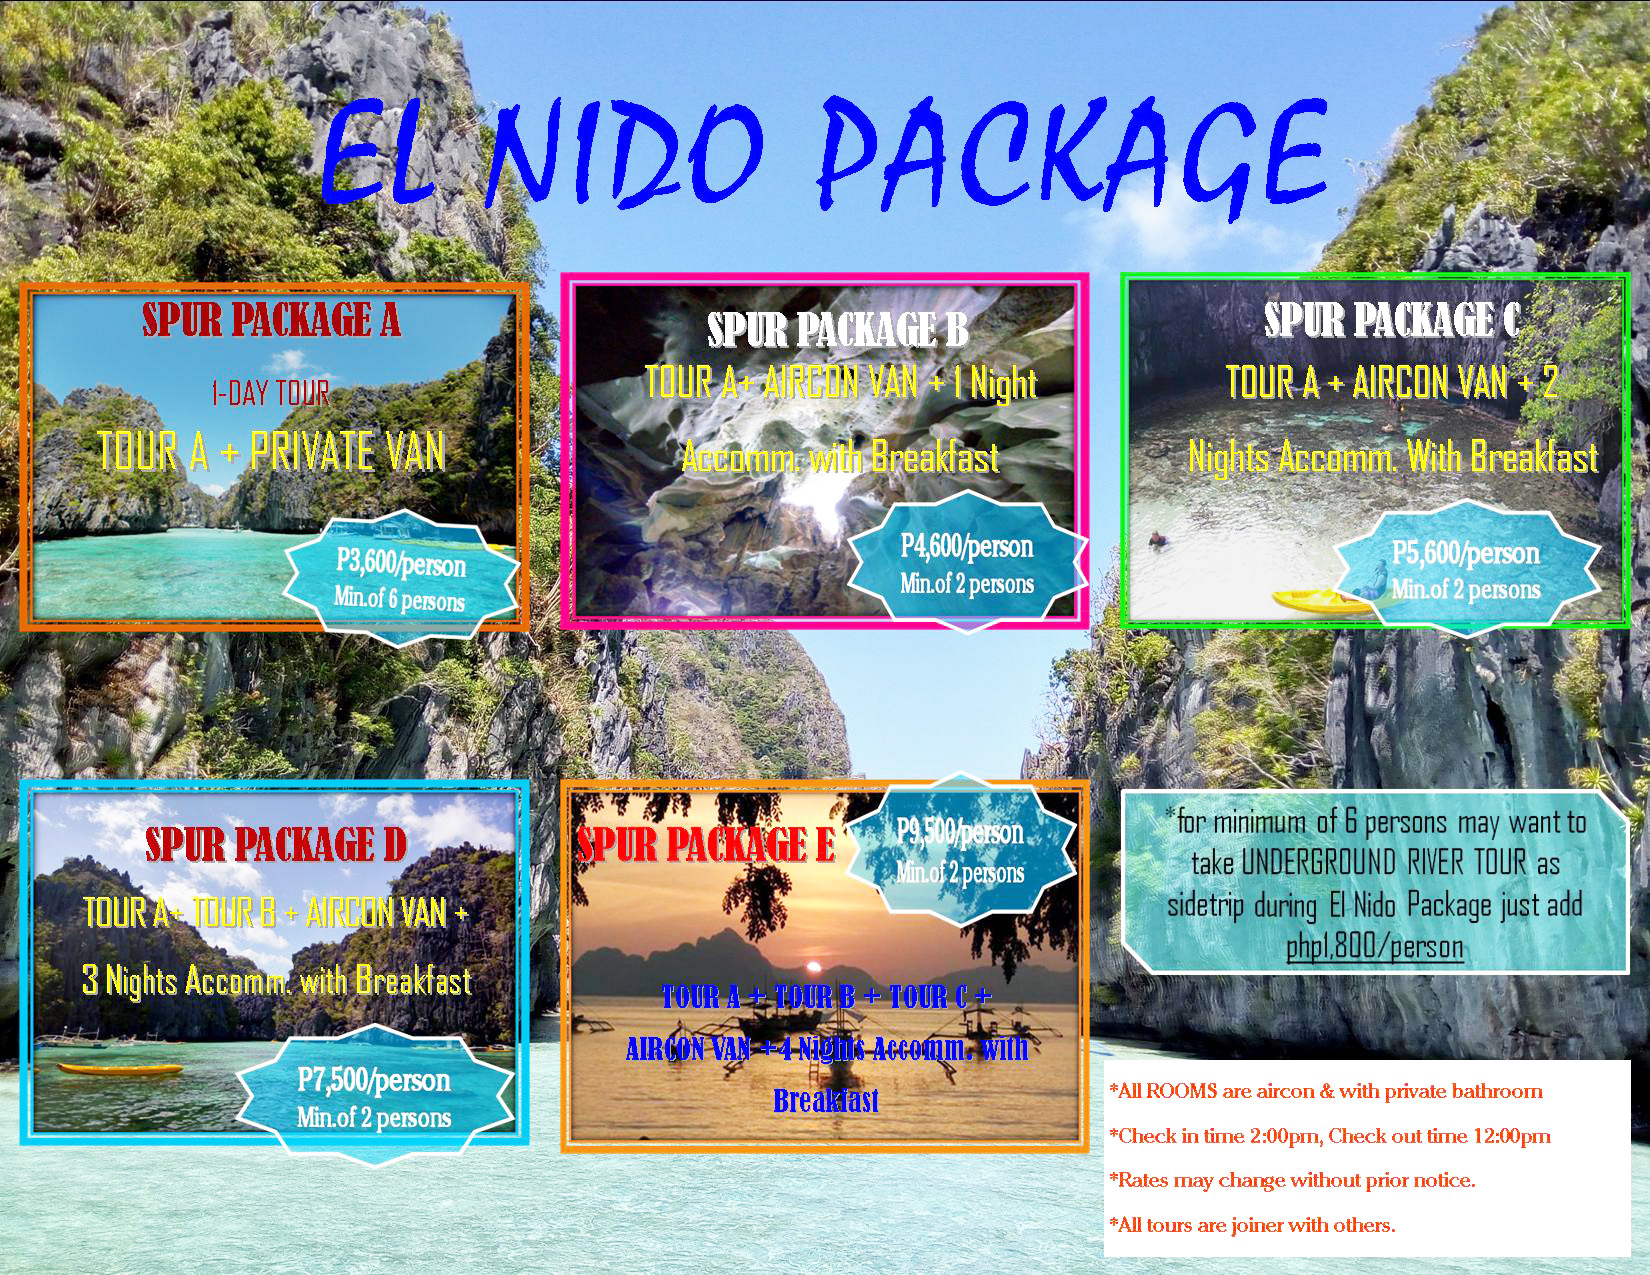 El Nido Package